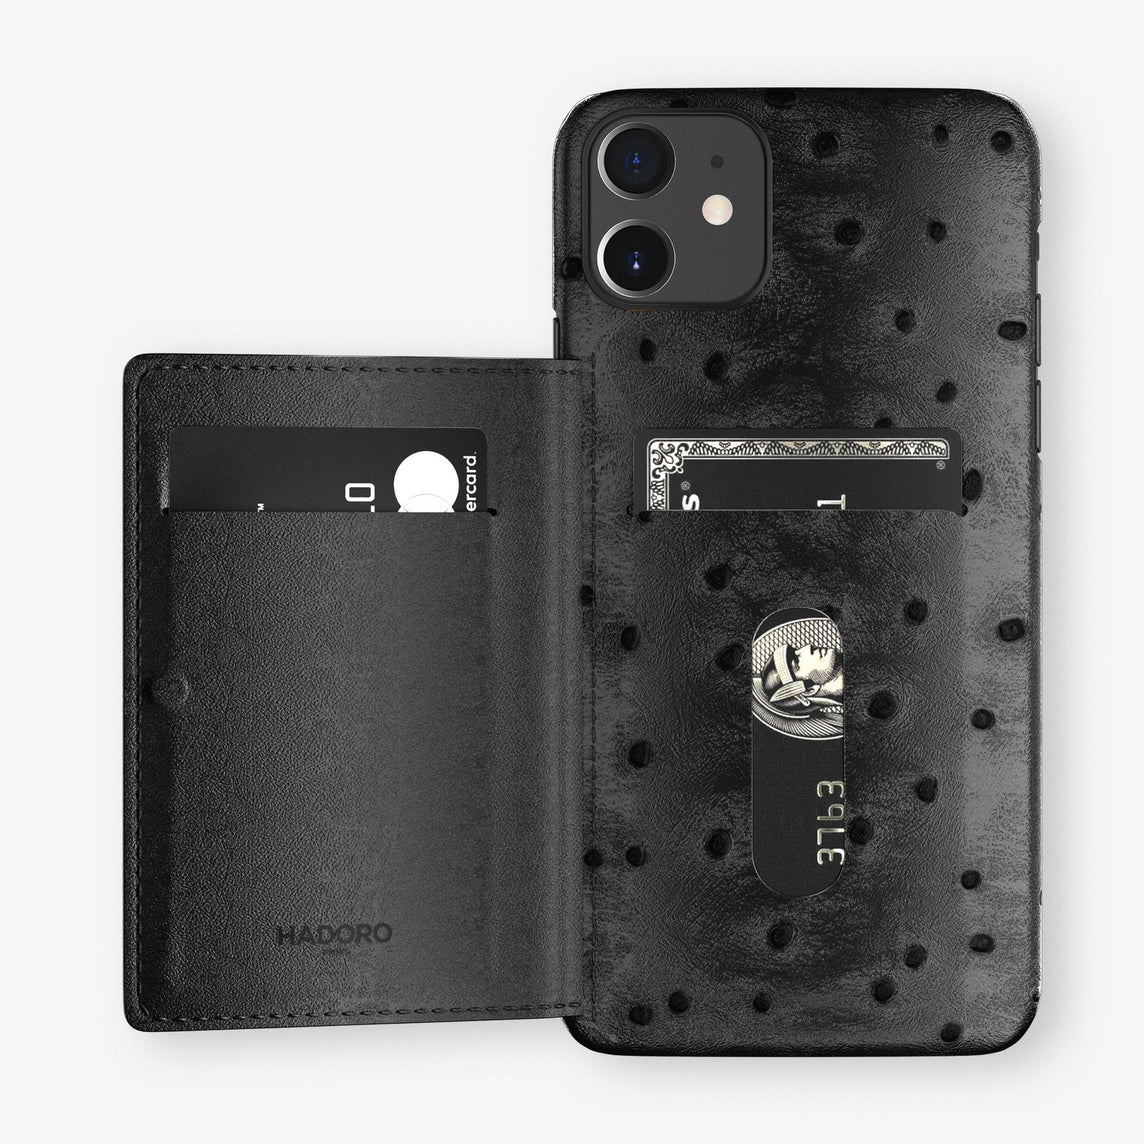 Ostrich Card Holder Flap Case iPhone 11 | Black - Black